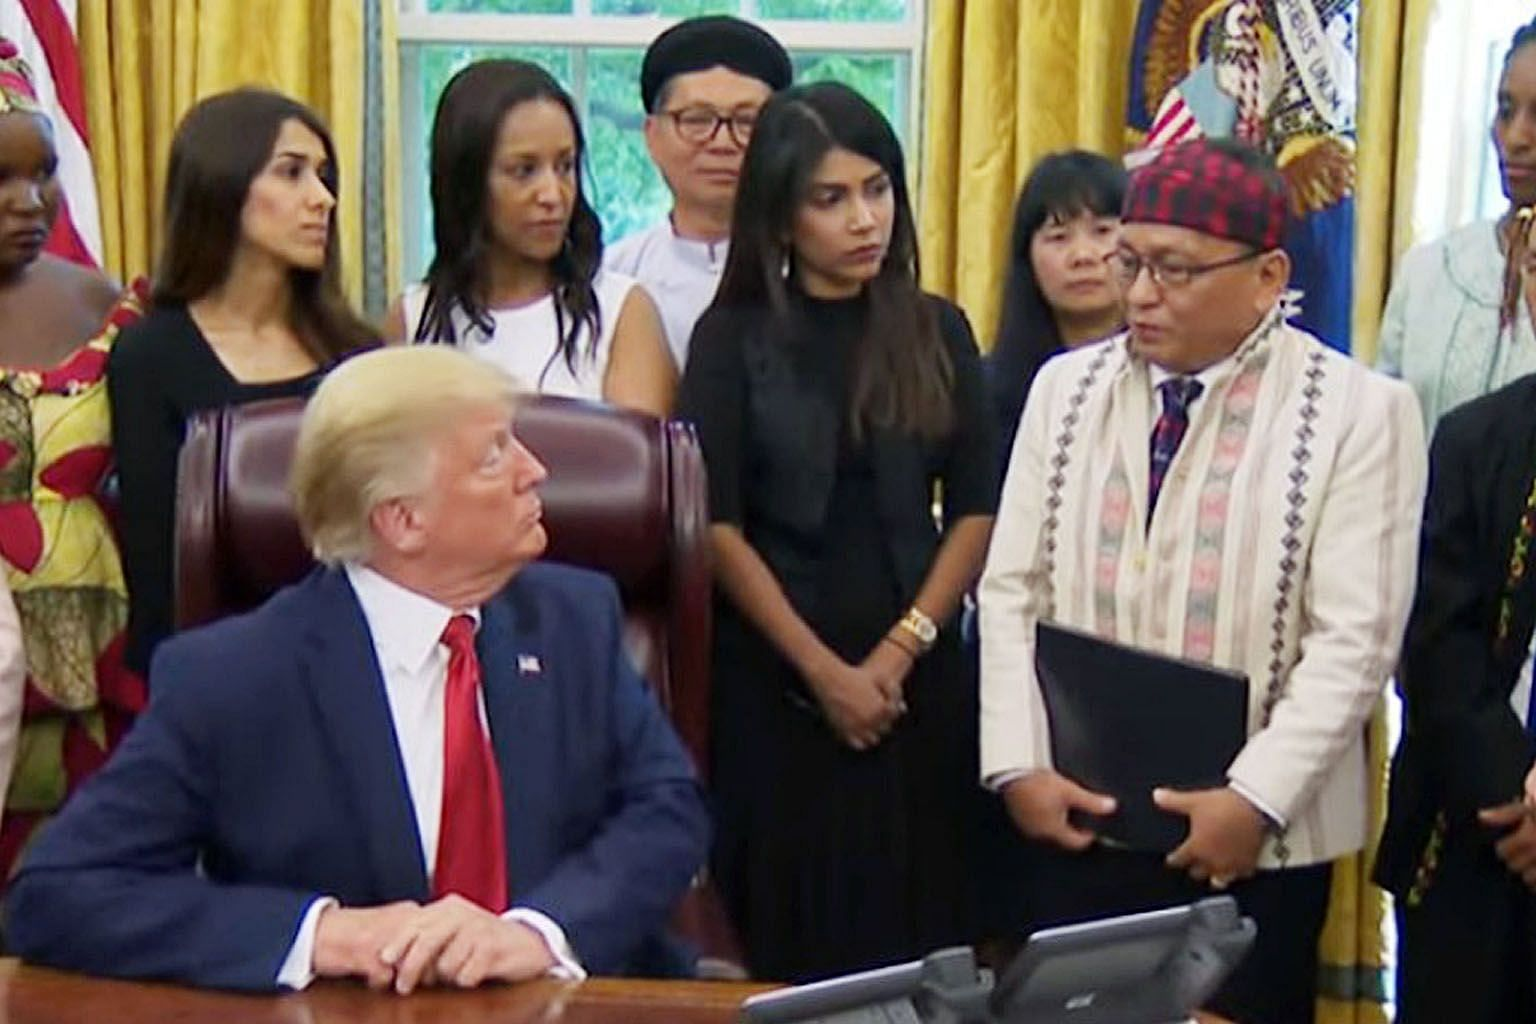 Reverend Hkalam Samson (far right) of Myanmar's Kachin Baptist Convention speaking to US President Donald Trump about religious persecution in Myanmar at the White House on July 17. PHOTO: WHITE HOUSE